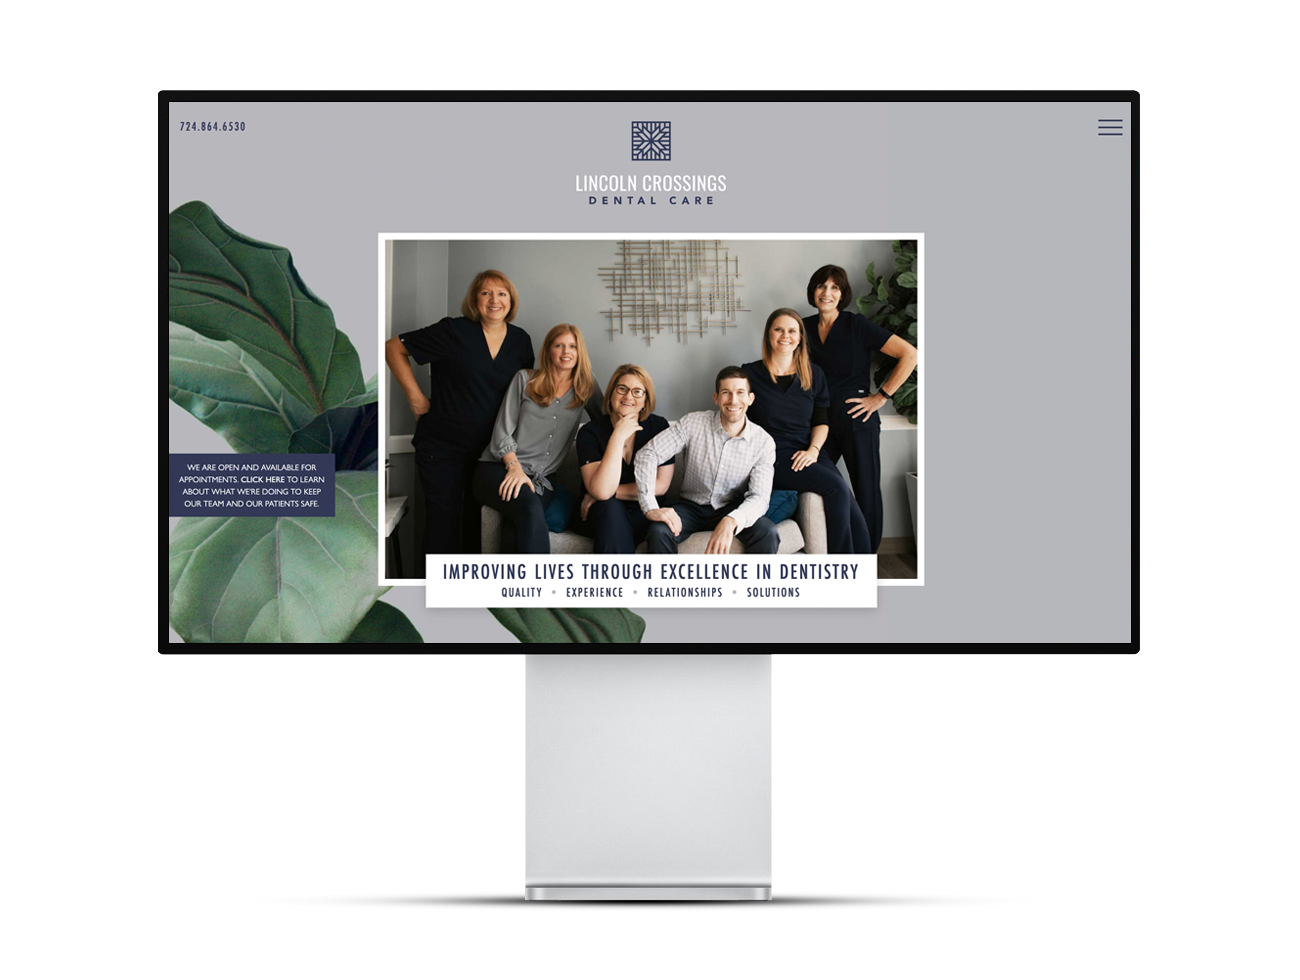 The Lincoln Crossings Dental Care homepage